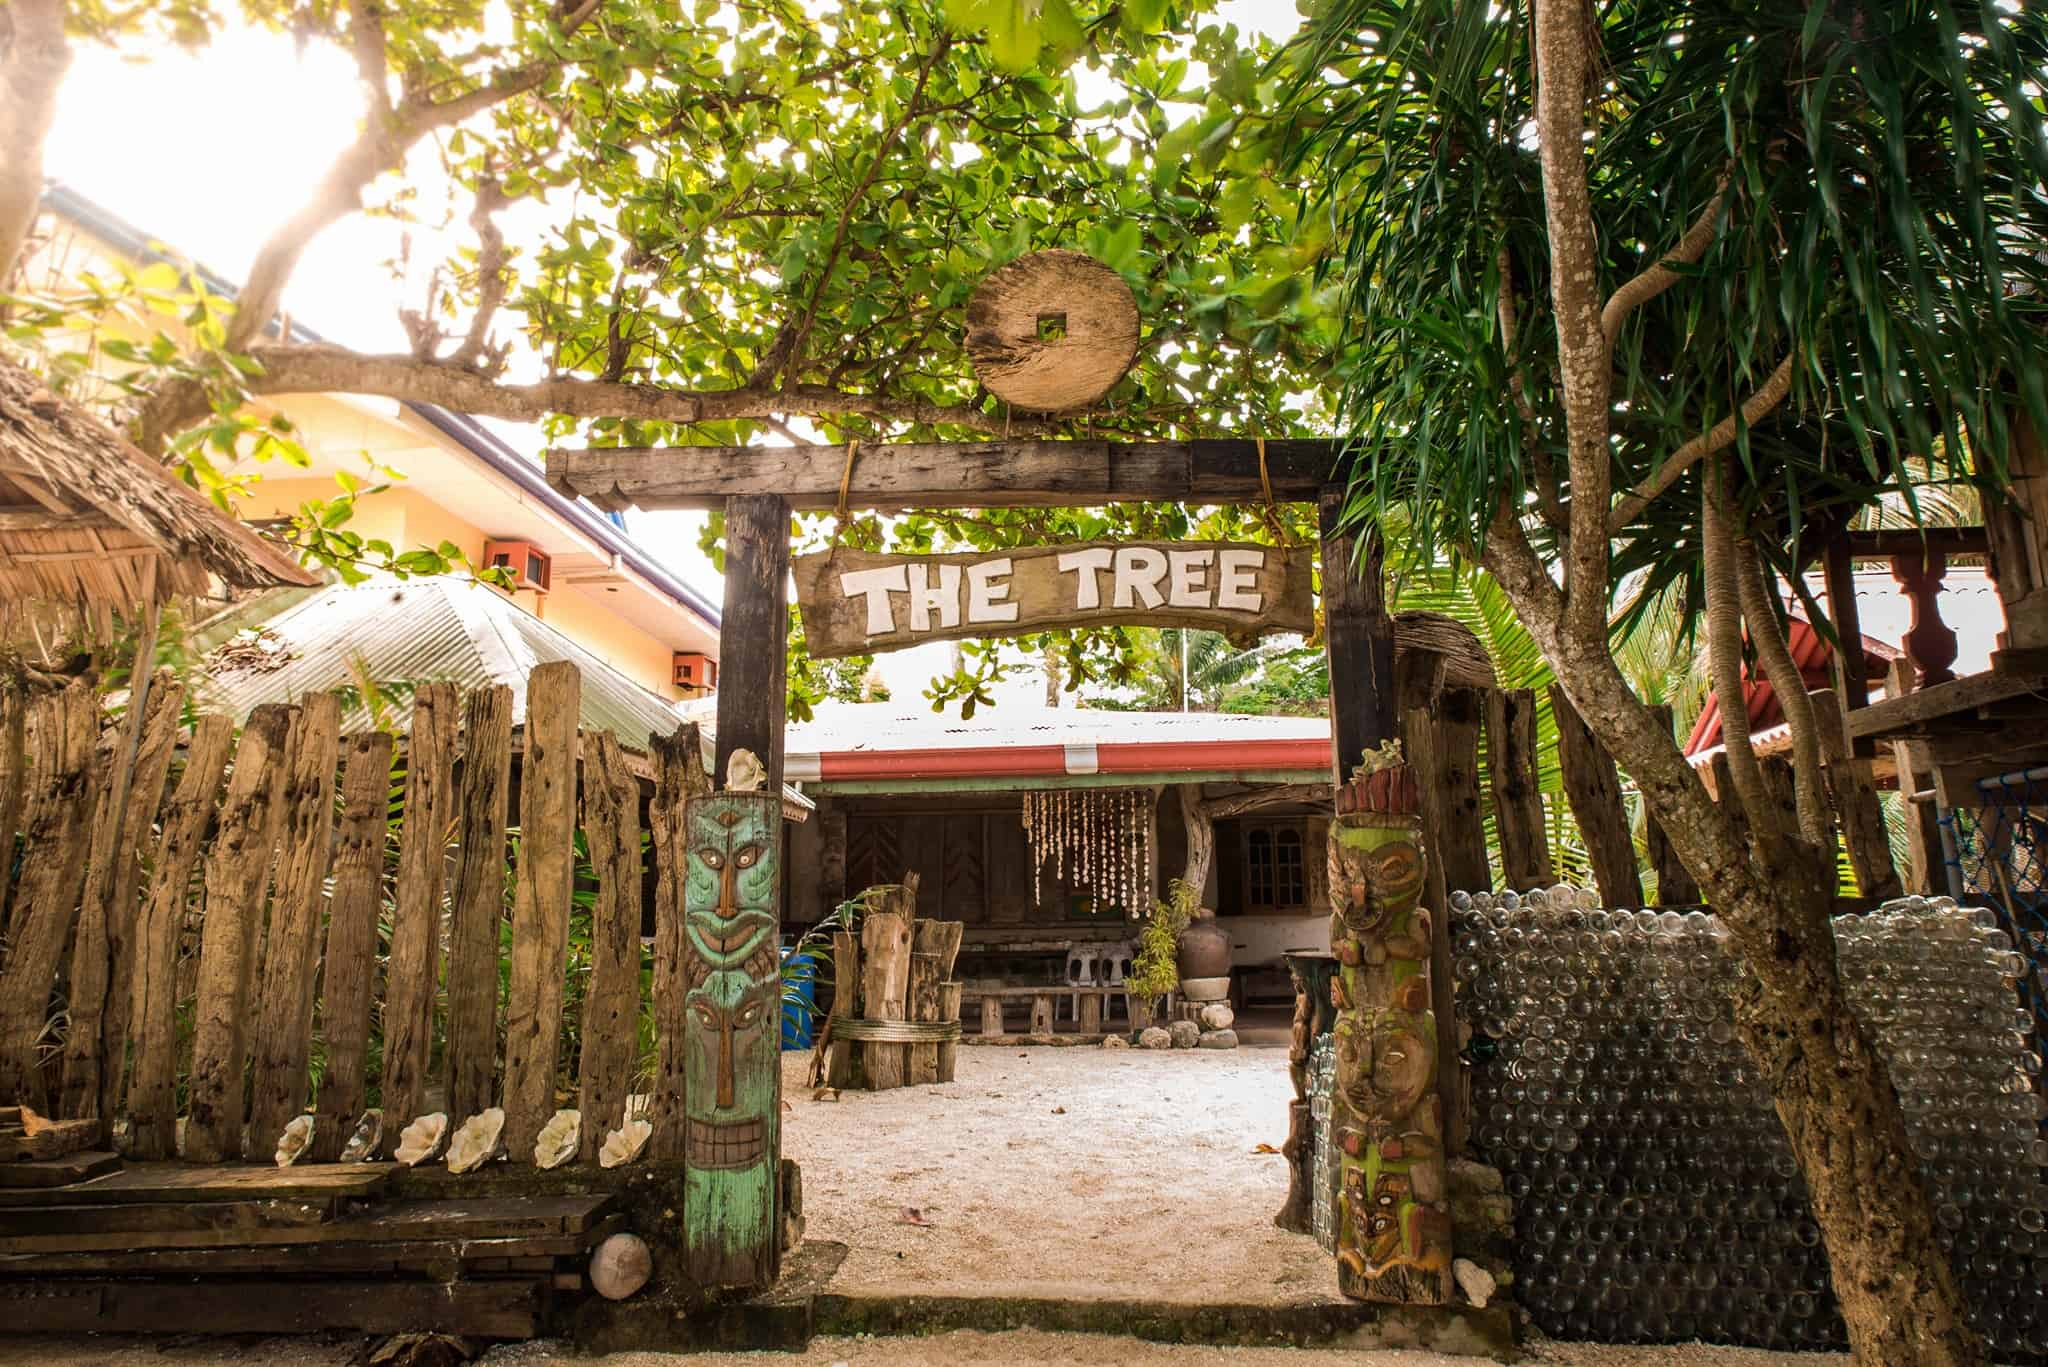 The Tree Sunset Super Affordable White Beach Resort In